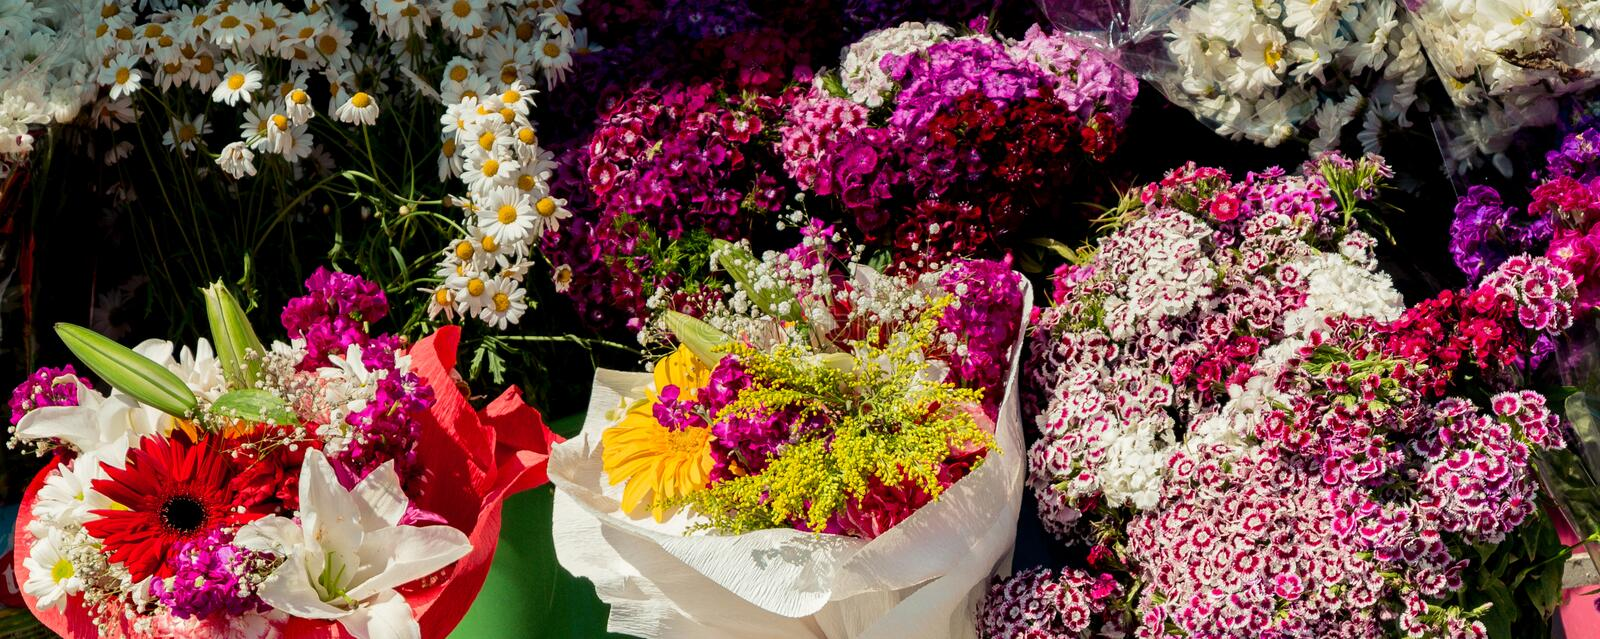 Beautiful flowers of various types royalty free stock image